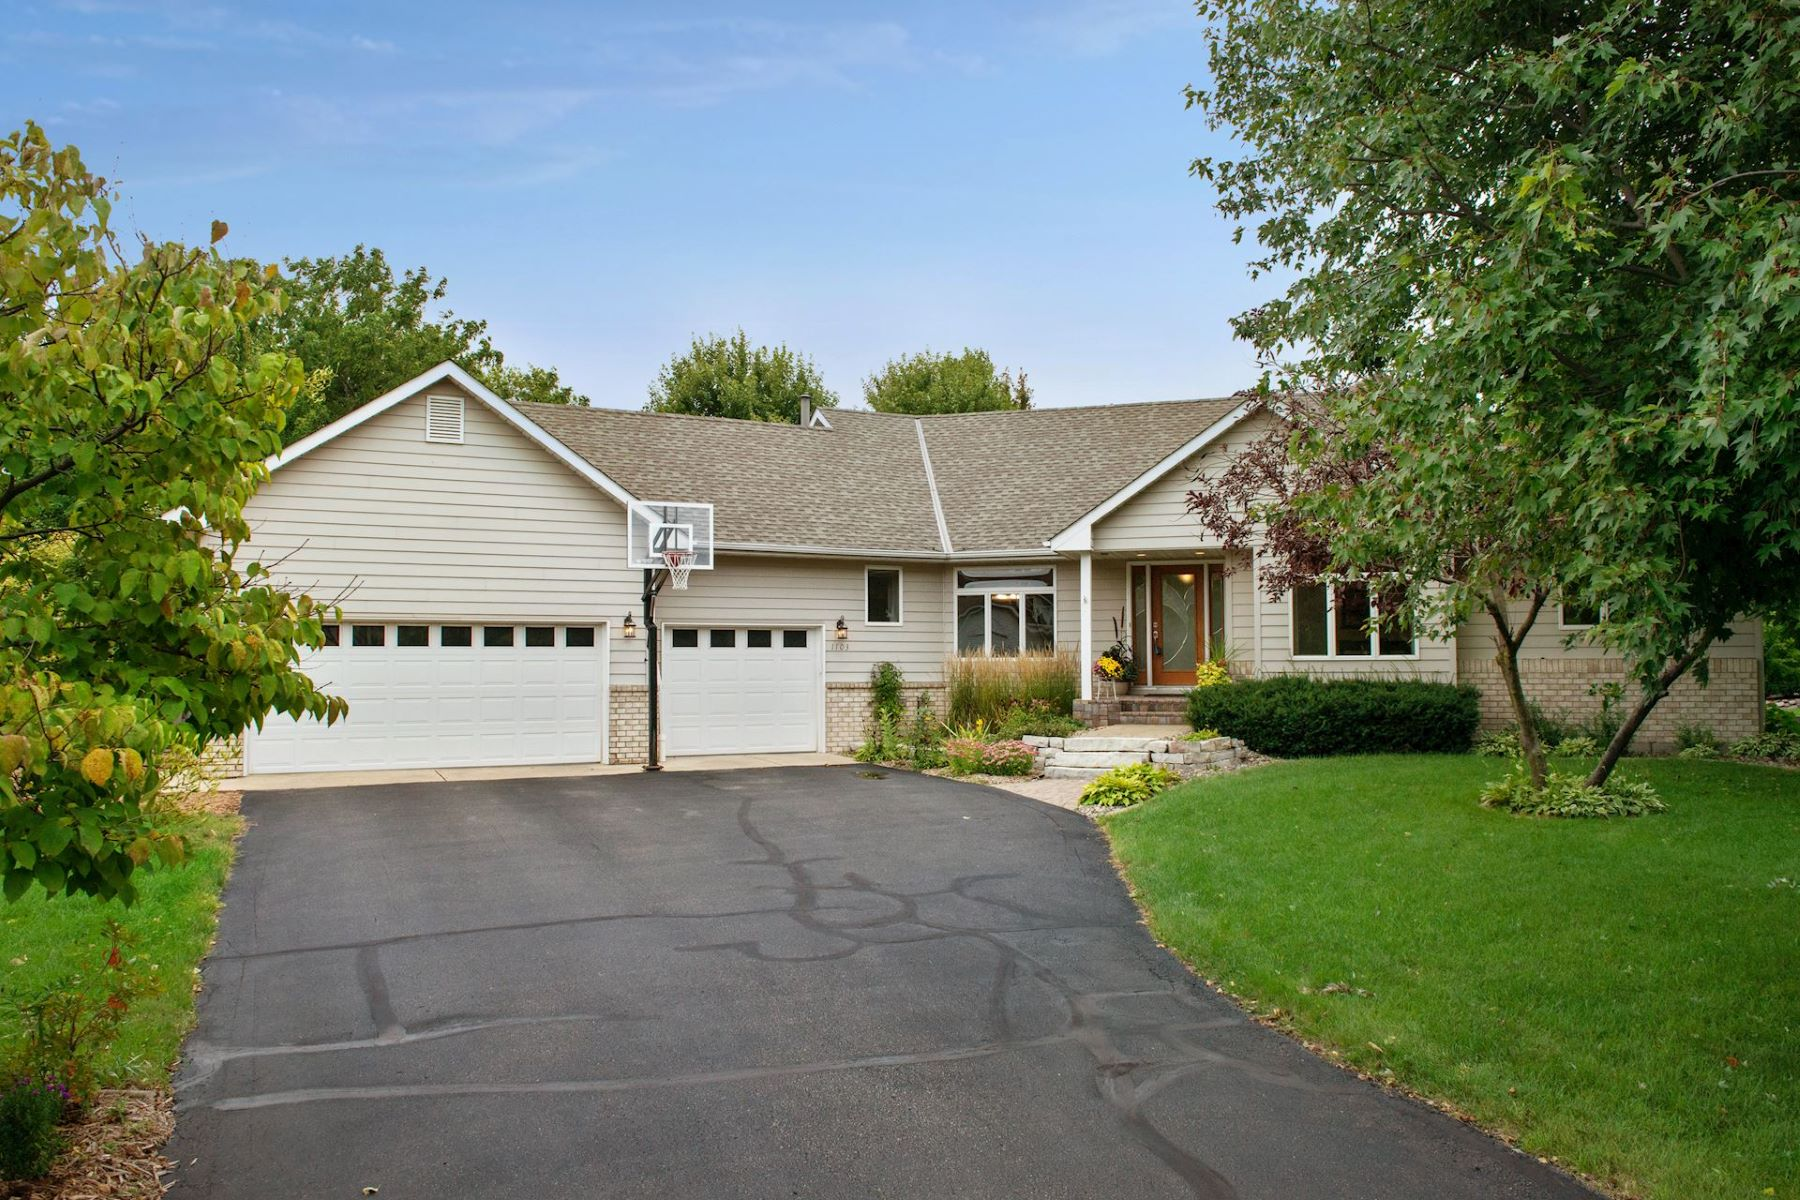 Single Family Homes for Sale at Custom Built 4 Bedroom Rambler in the Hazeltine Bluff Neighborhood 1103 Timber Circle Chaska, Minnesota 55318 United States